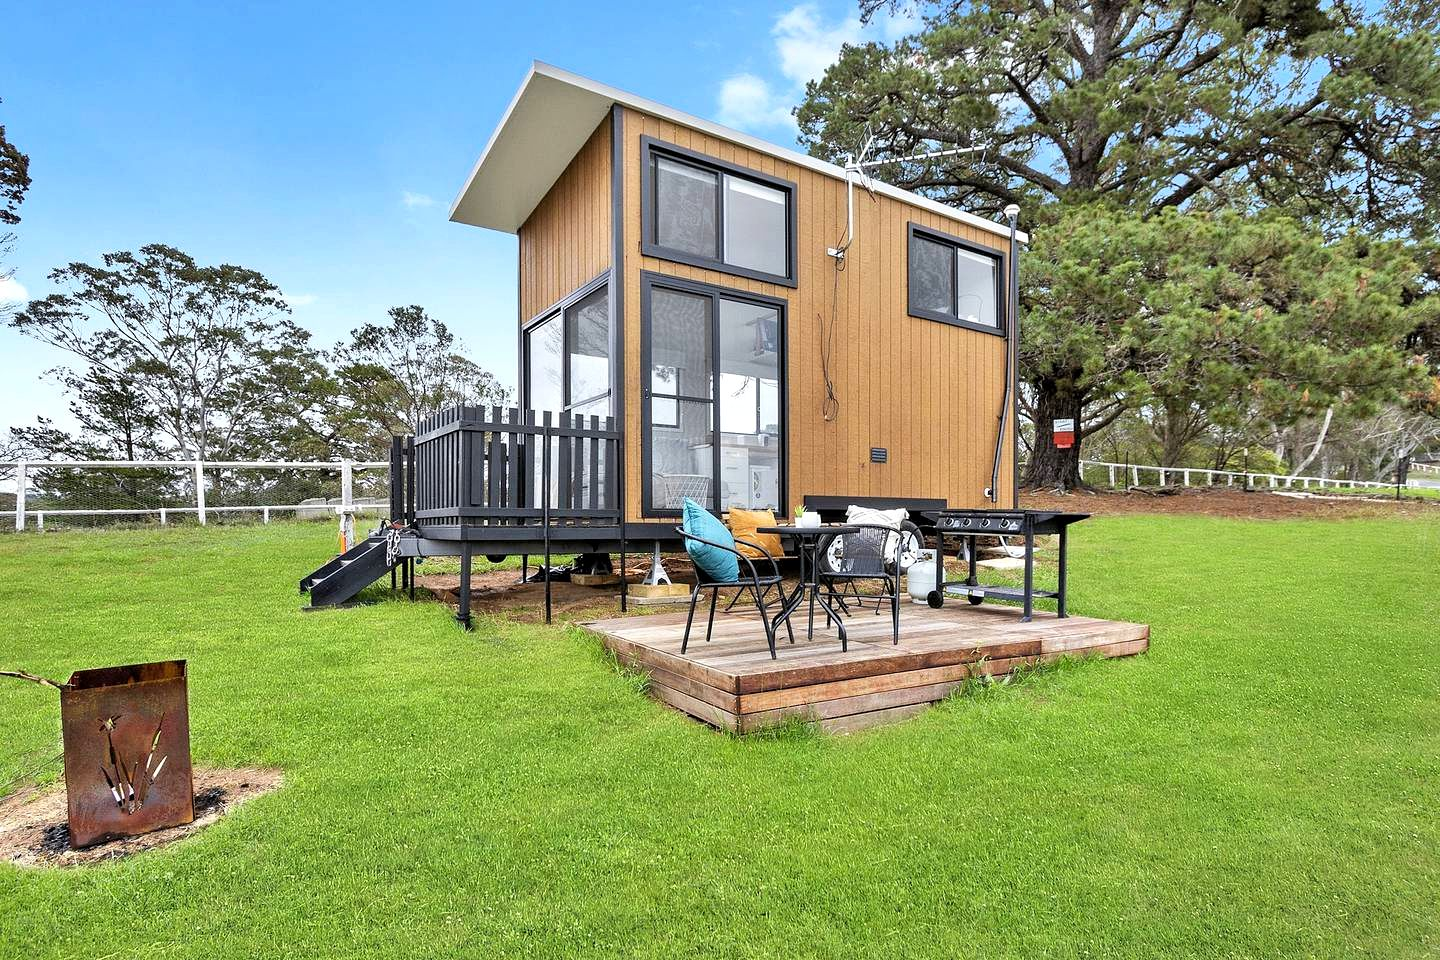 This tiny houses in Picton is the perfect romantic getaway in New South Wales. Perfect for guests looking for a holiday home immersed in nature!